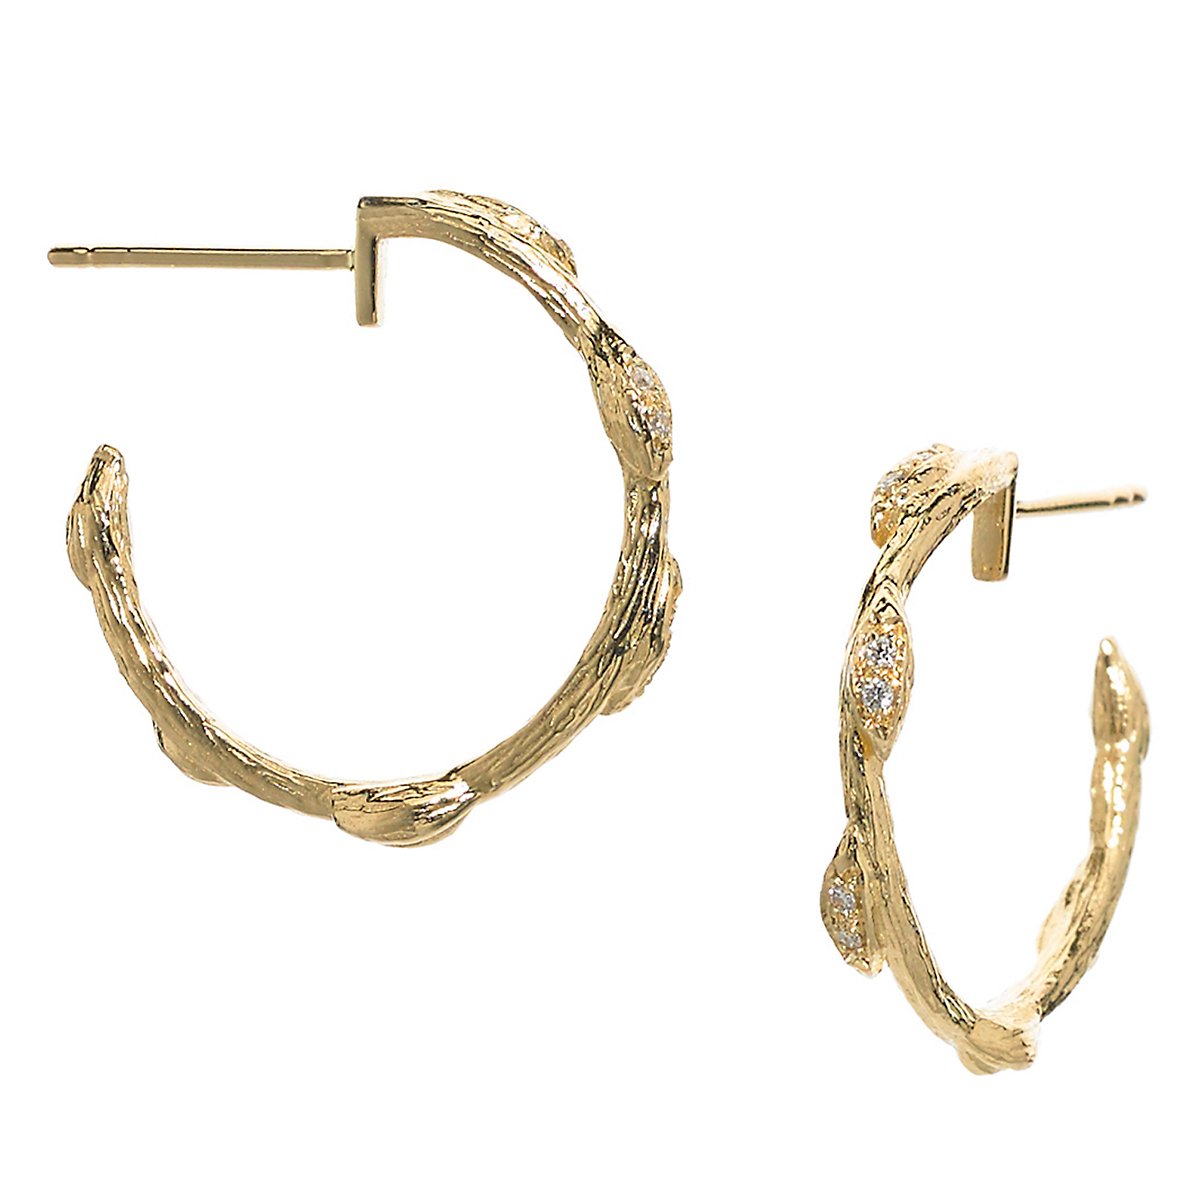 Elizabeth Showers Small Petal & Vine Diamond Hoop Earrings